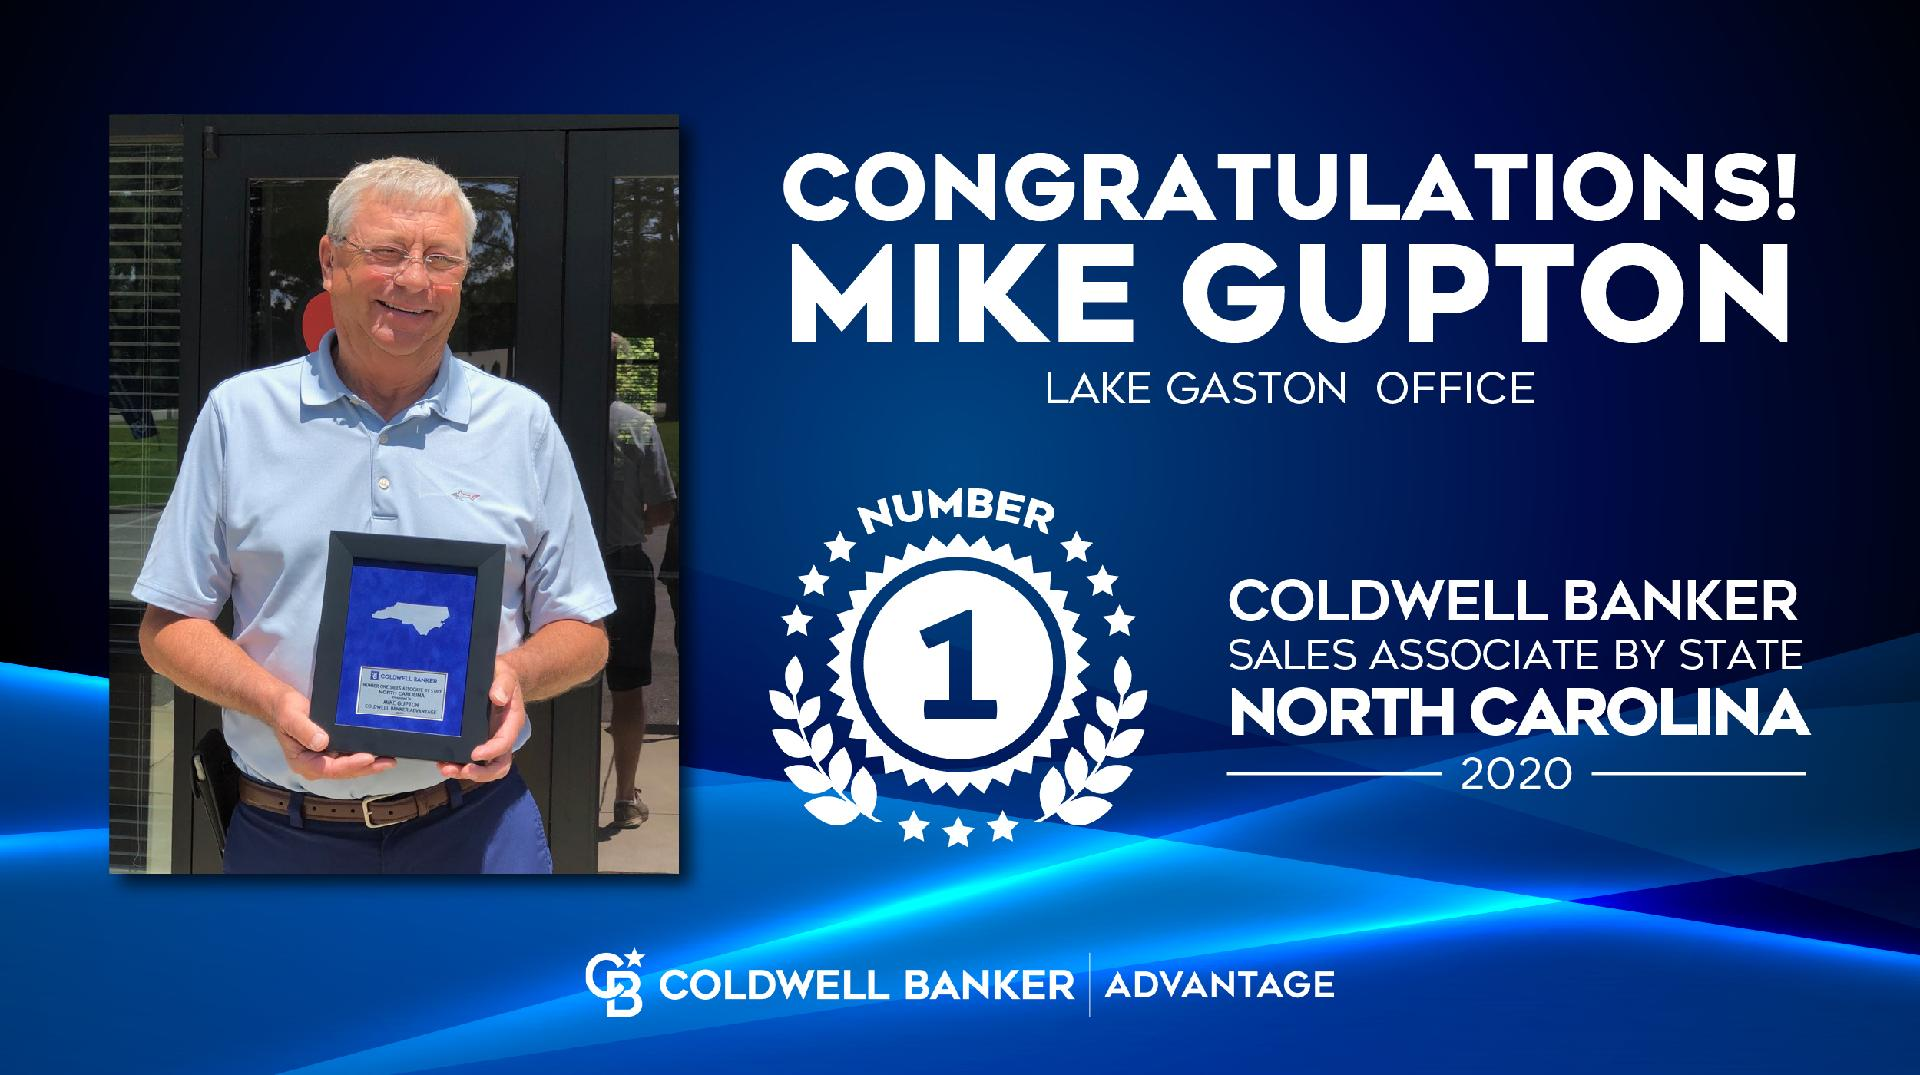 Mike Gupton Awarded As The #1 Coldwell Banker Real Estate Agent In NC Picture